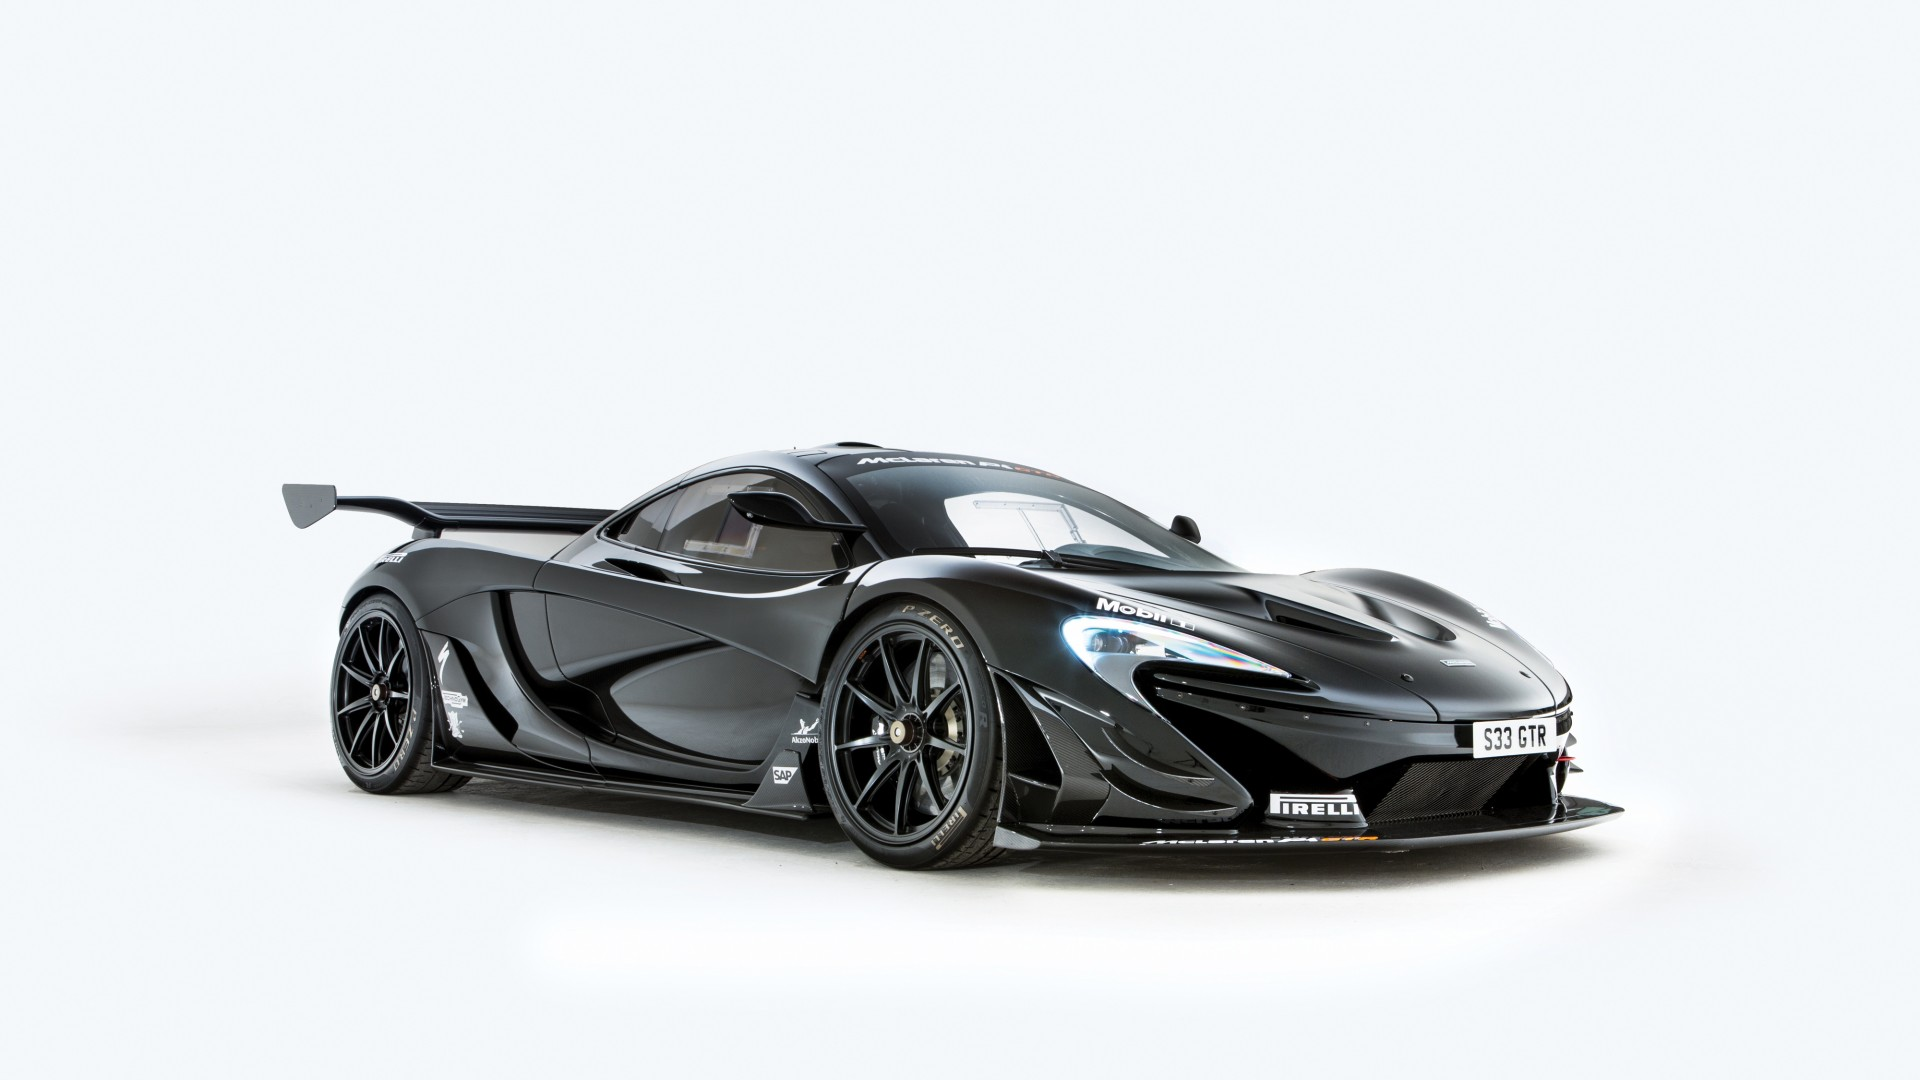 Mclaren p1 gtr hd wallpapers 7